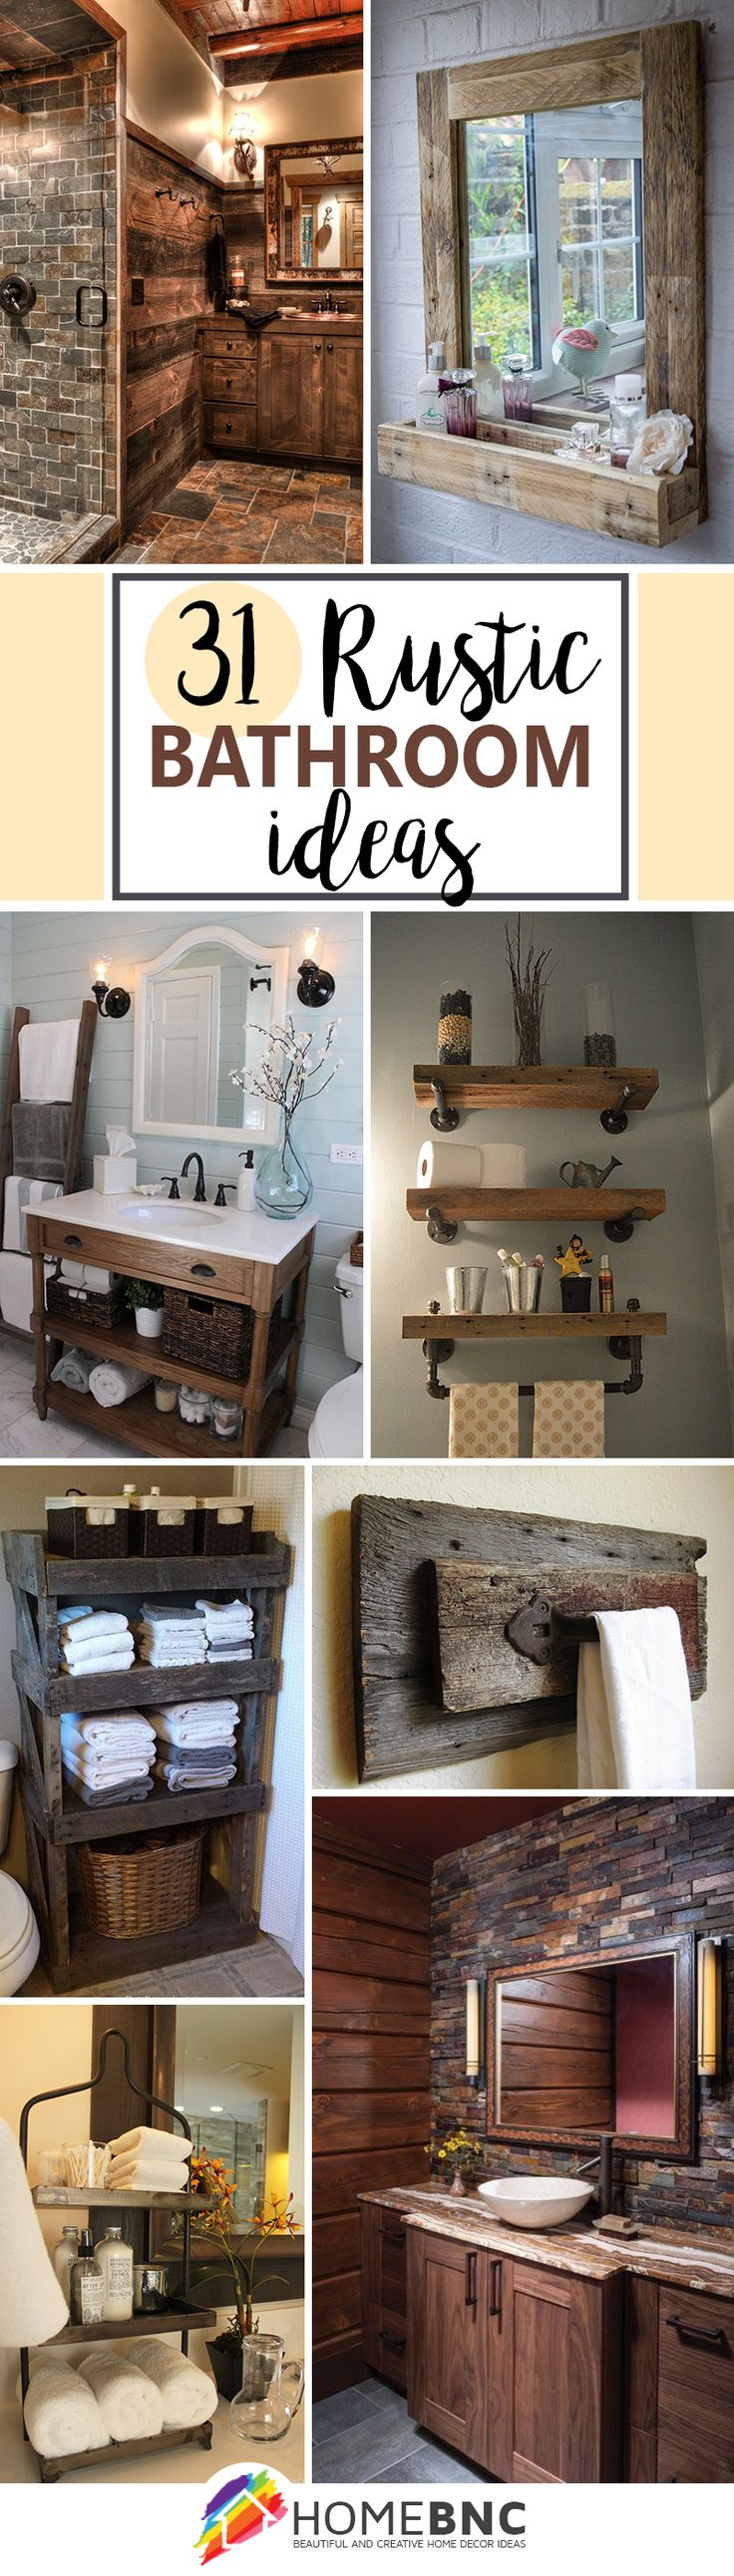 Amazing Build Your Own Bathroom Vanity Thick Light Blue Bathroom Sinks Shaped Showerbathdesign Bathtub Drain Smells Youthful Delta Faucets For Bathtub OrangeCost To Add A Bedroom And Bathroom 17 Best Ideas About Rustic Bathroom Designs On Pinterest | Rustic ..